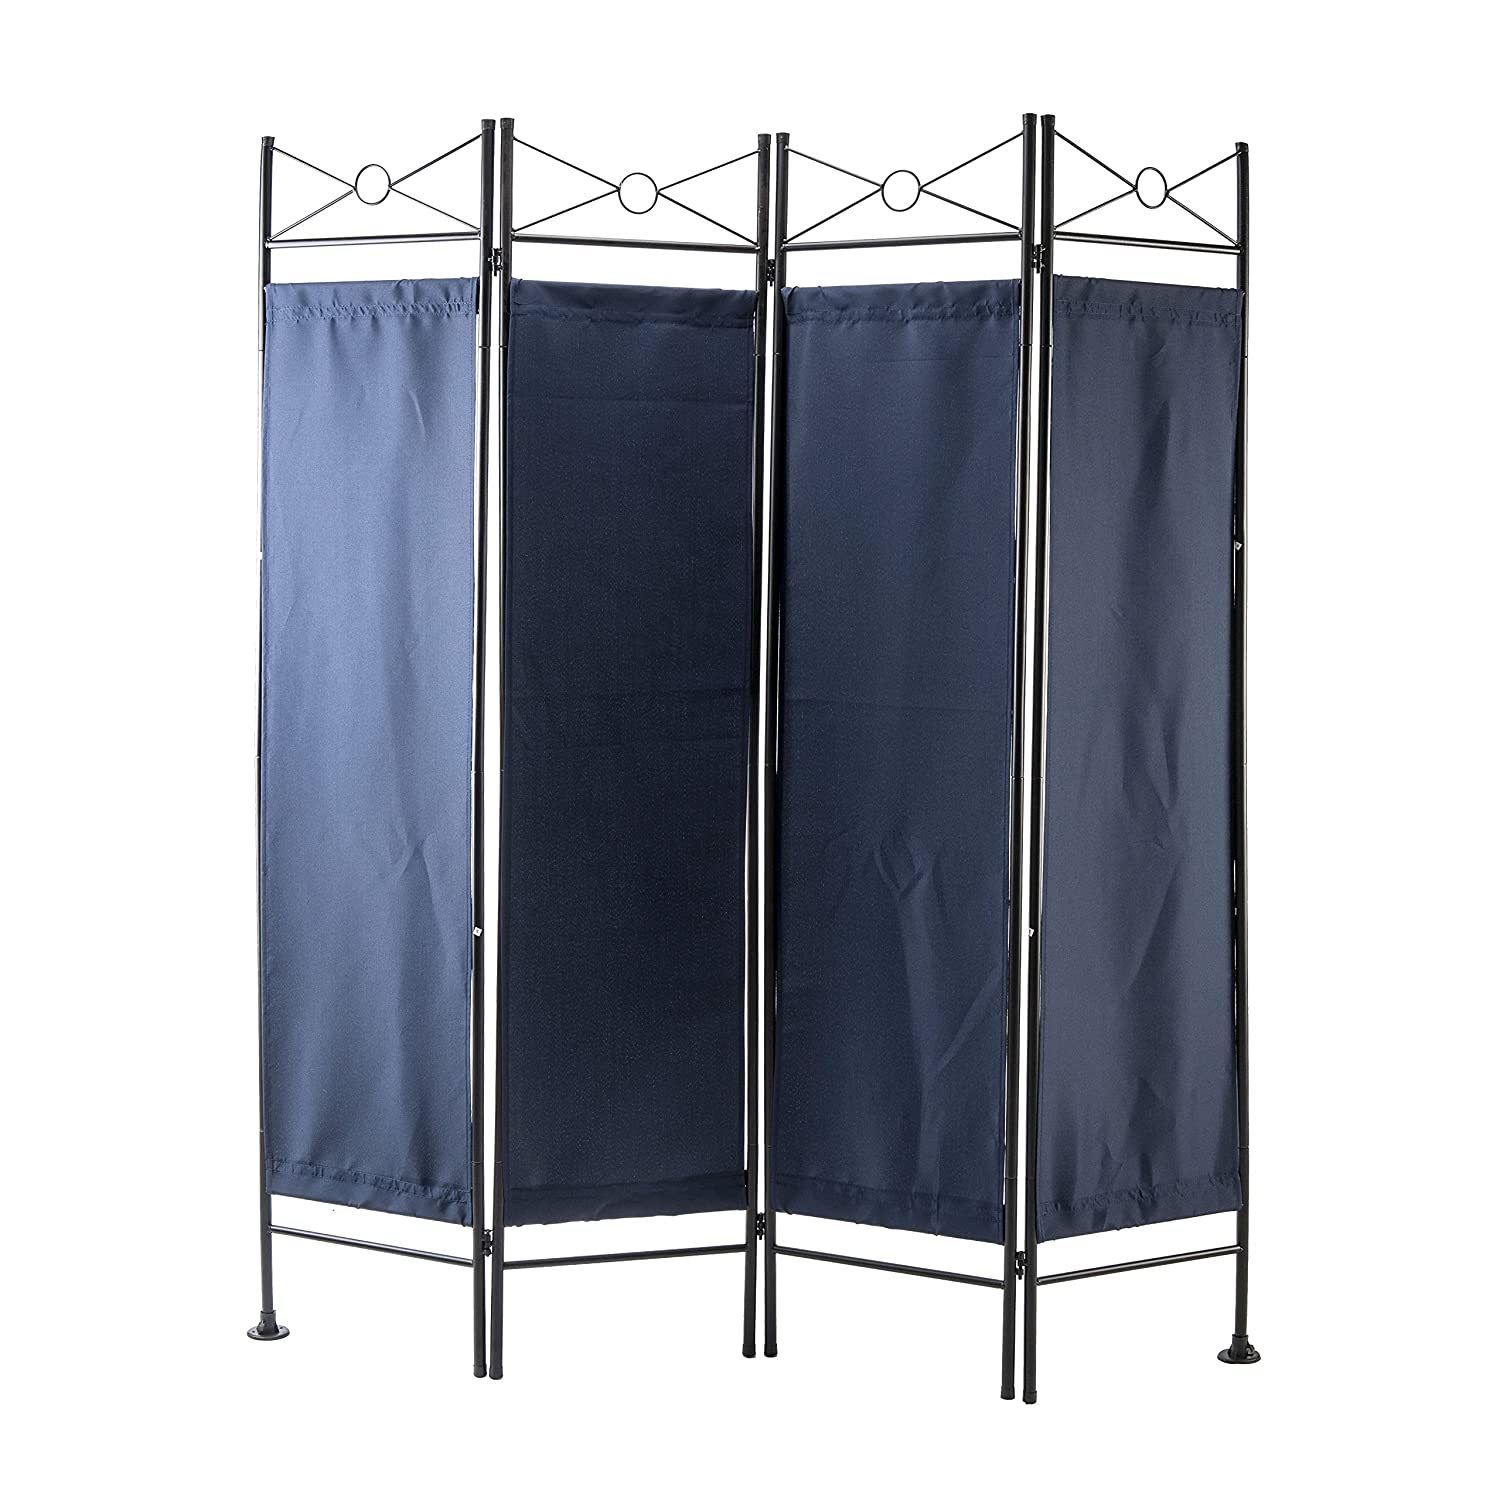 GOJOOASIS 4 Panel Room Divider Folding Privacy Screen Home Office Dorm Decor (Blue) NA